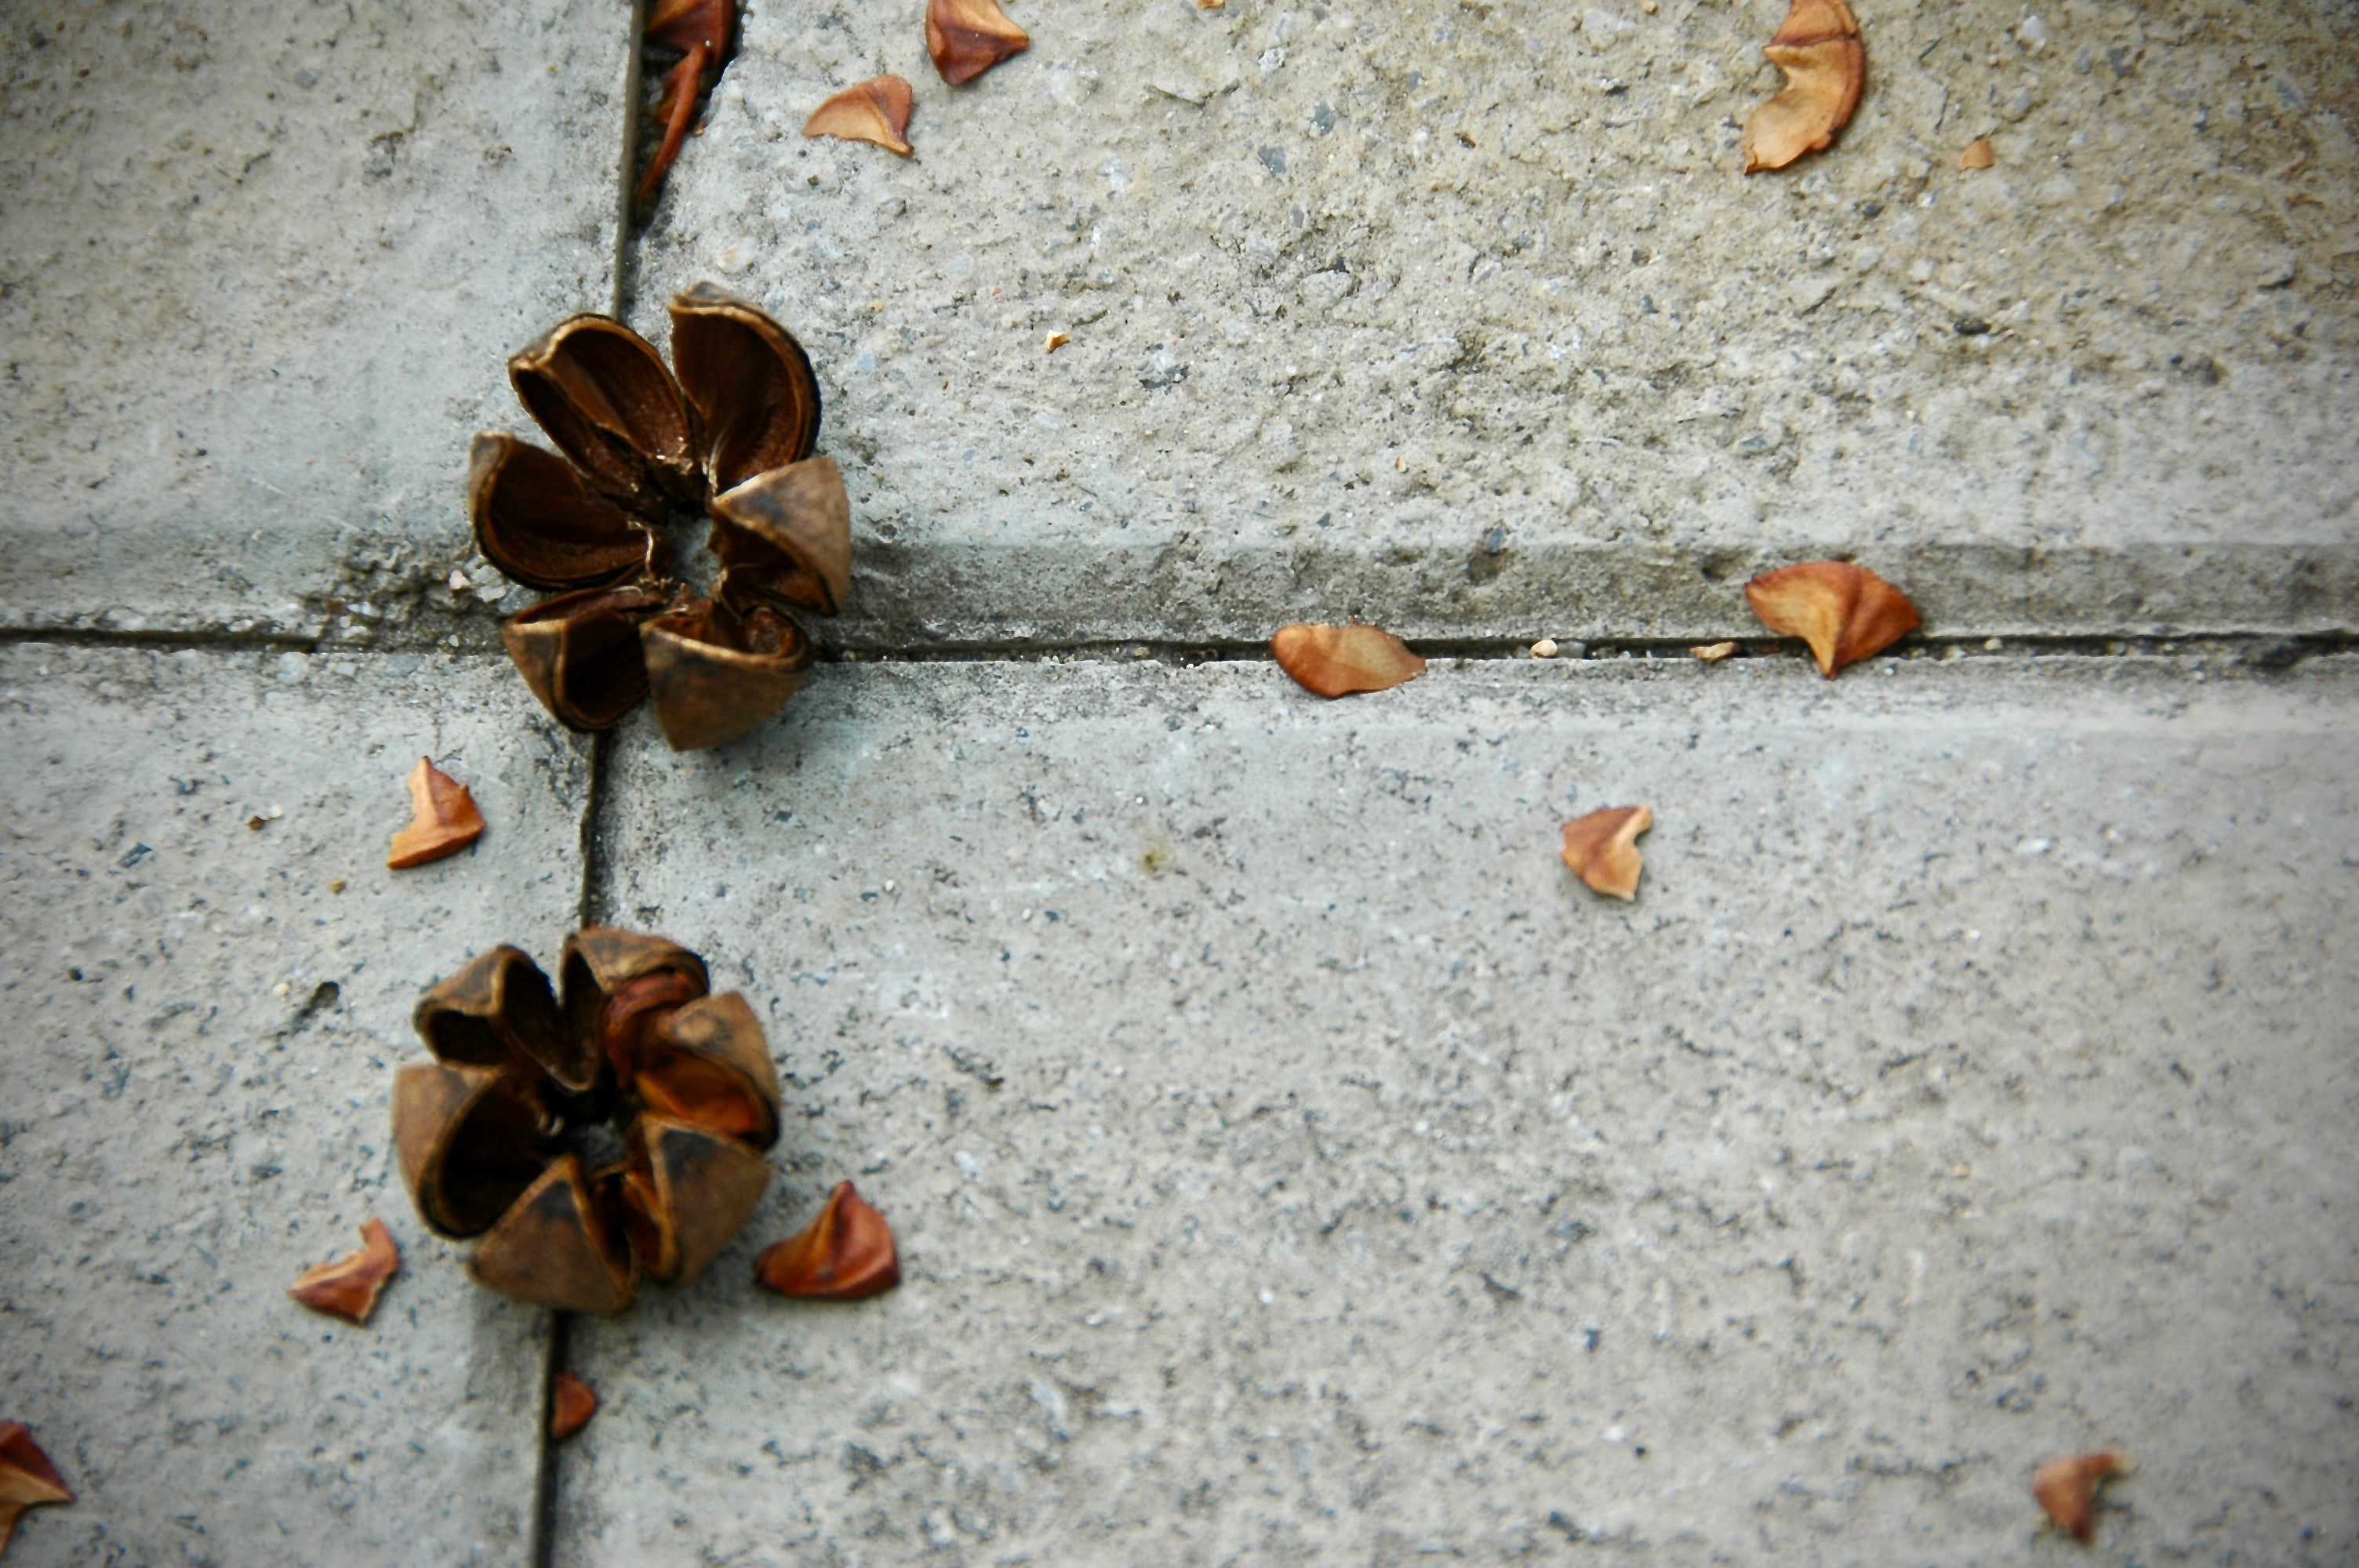 two brown nut shells on pavement